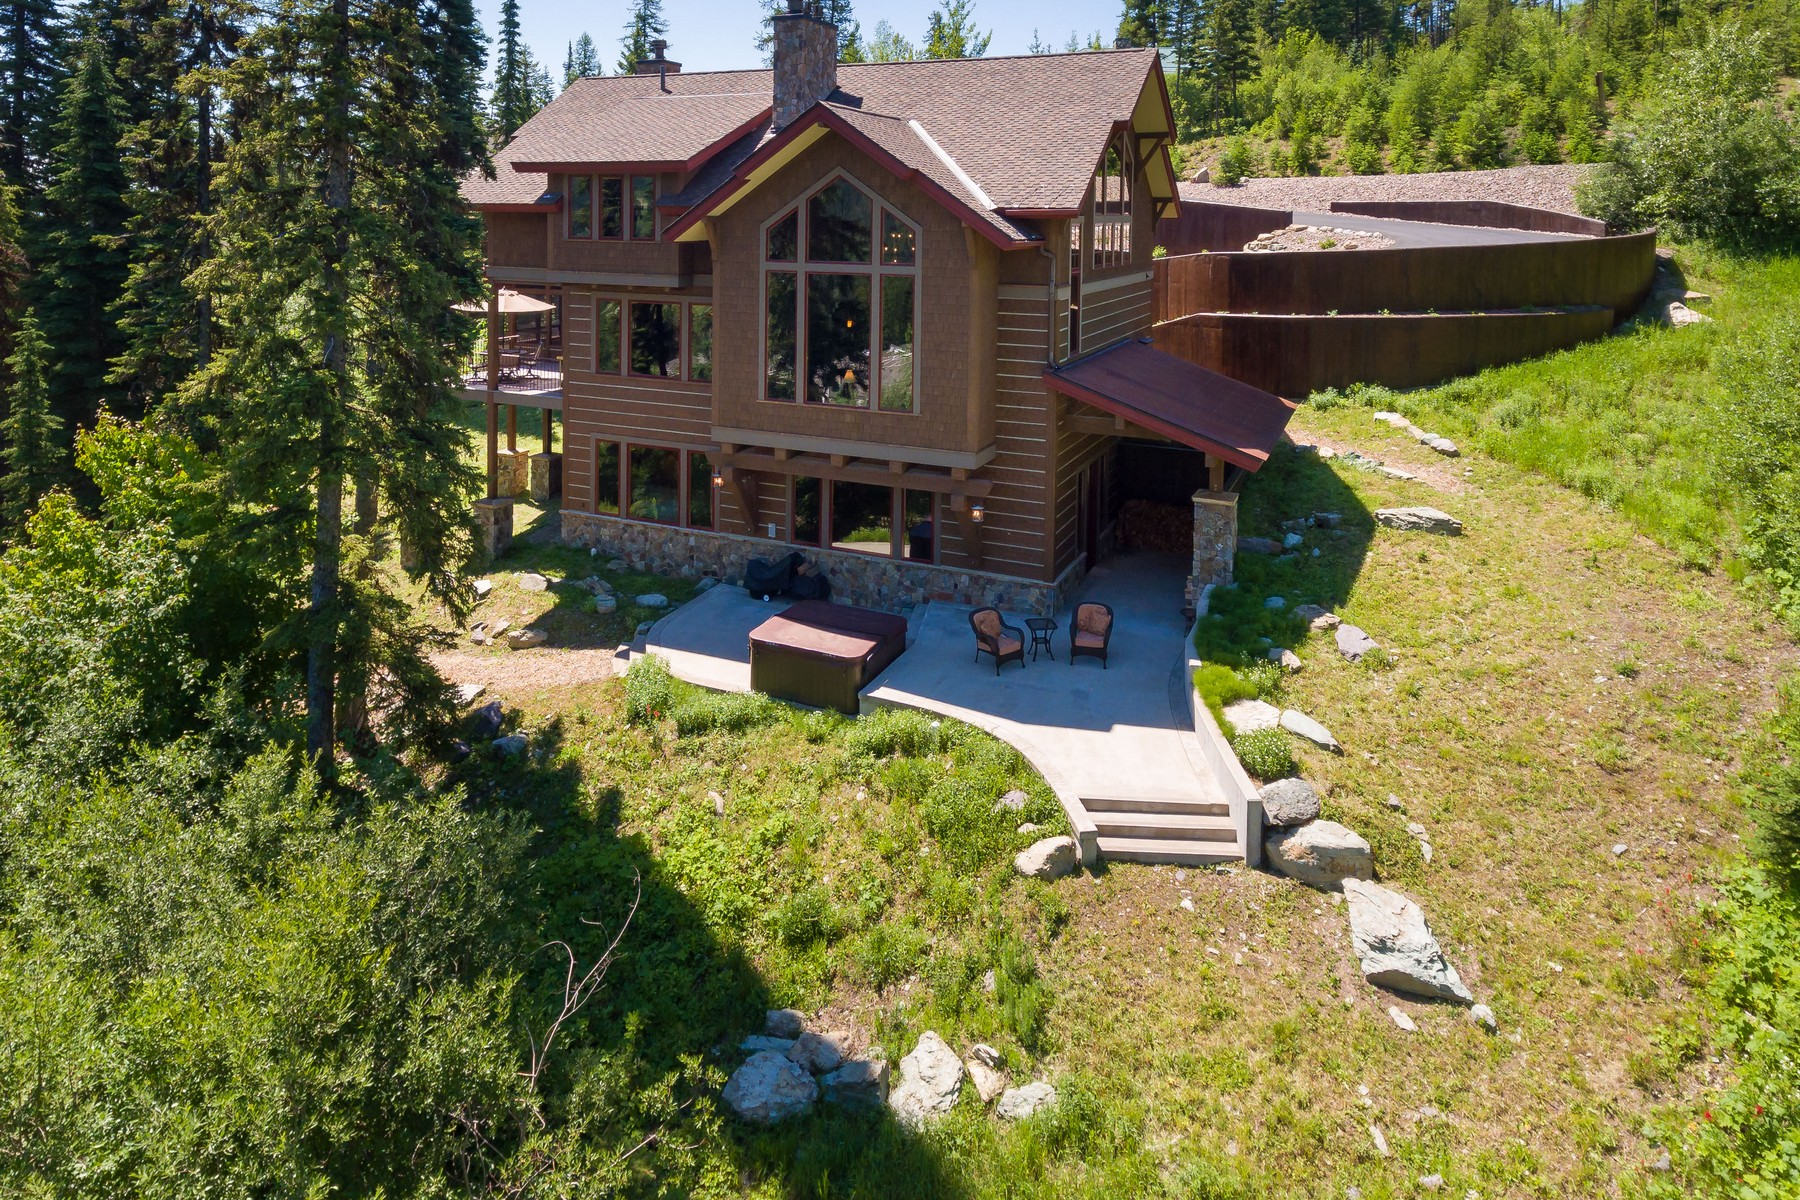 Additional photo for property listing at 150 Ridge Run Dr , Whitefish, MT 59937 150  Ridge Run Dr Whitefish, Montana 59937 United States